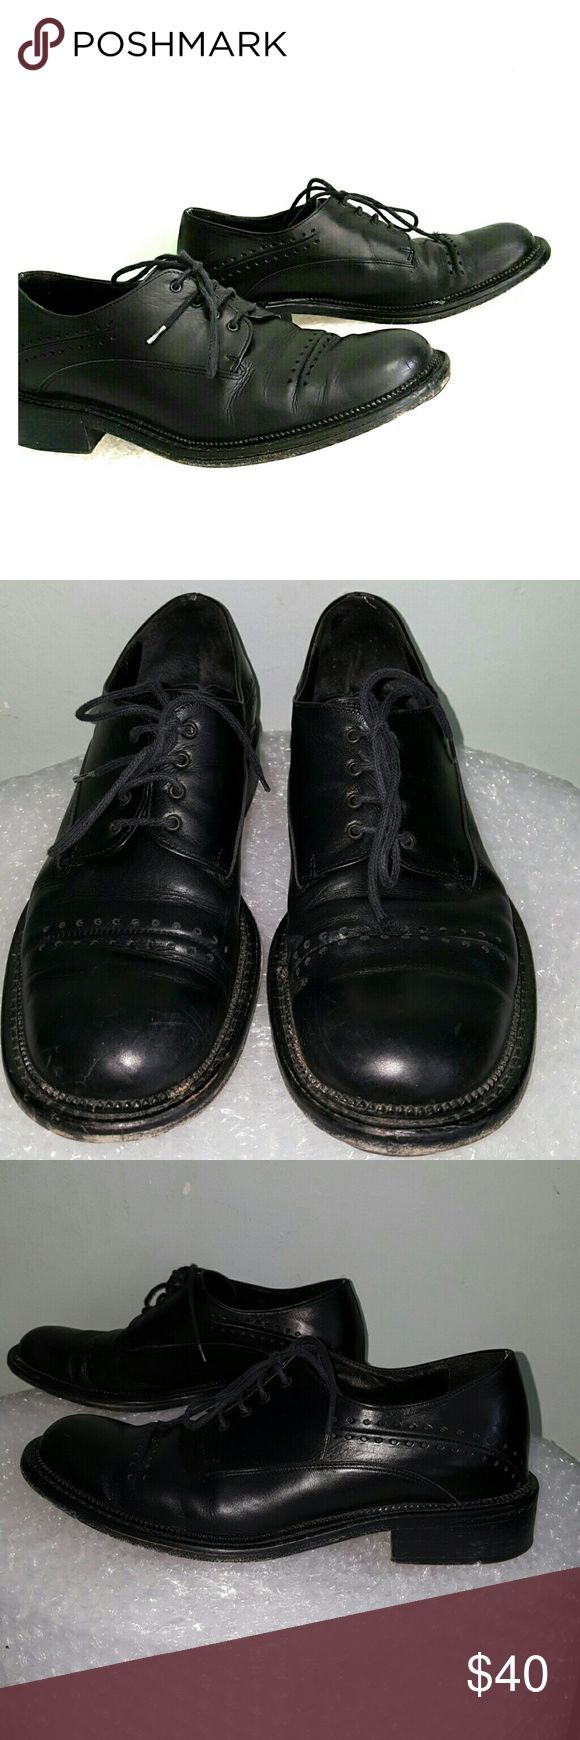 """MARE black brogue shoes 38.5 M Italy MARE only issues a limited number of each design. 1 1/4"""" heel. Leather sole. Lace up front. Brogue detail. Some scratching to the toes. Made in Italy. MARE Shoes Heels"""